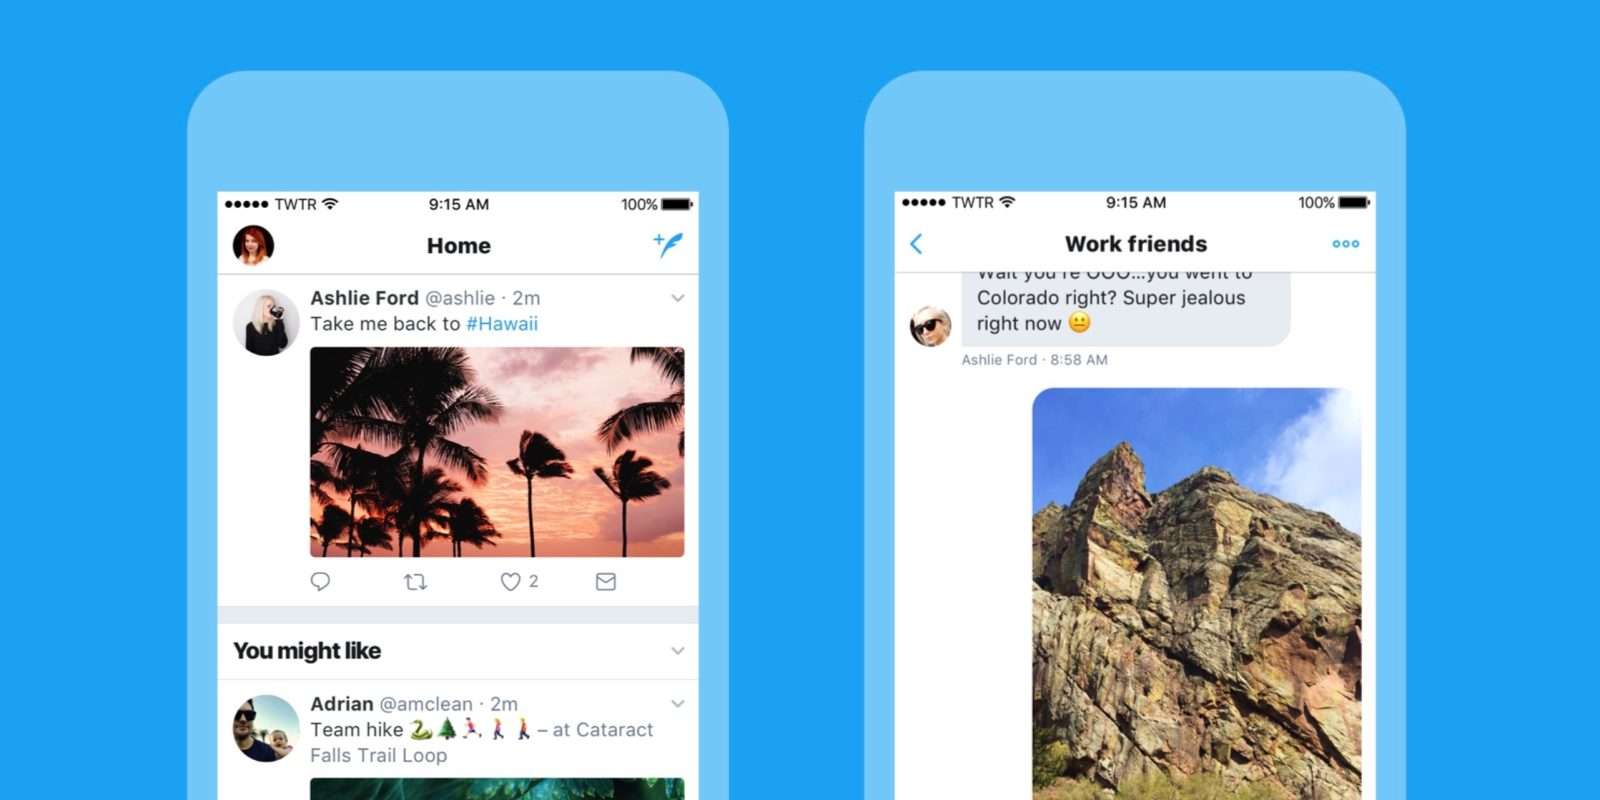 Major update to iOS Twitter app includes real-time count updates